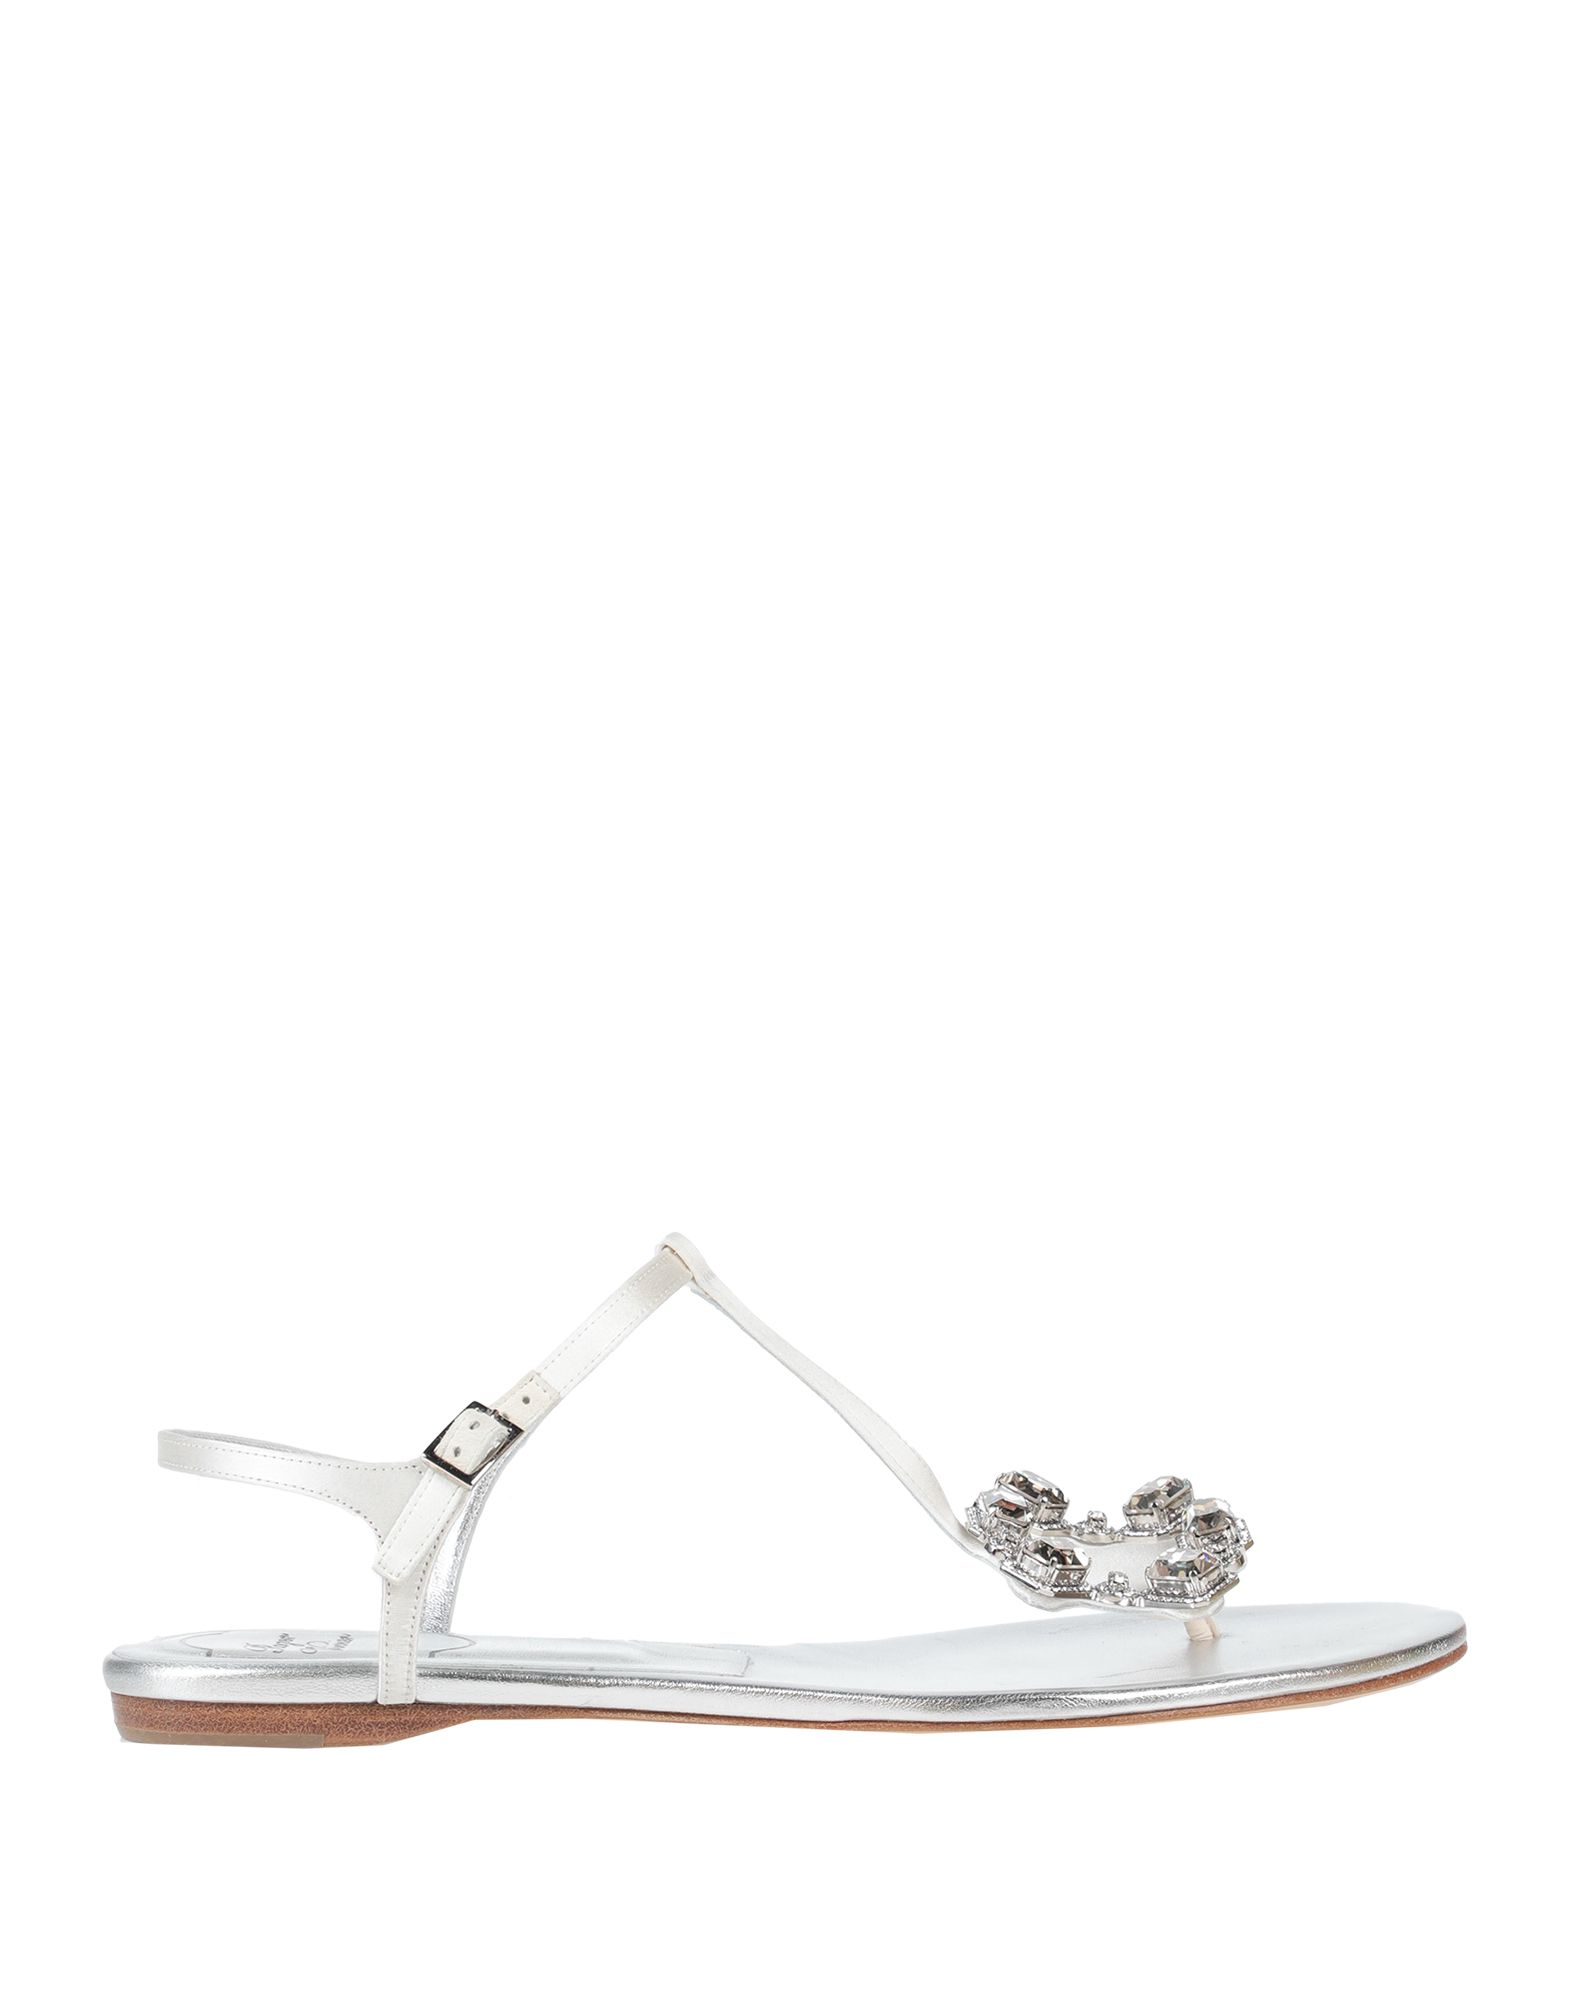 ROGER VIVIER Toe strap sandals. satin, rhinestones, solid color, buckling ankle strap closure, round toeline, flat, leather lining, leather sole, contains non-textile parts of animal origin. Textile fibers